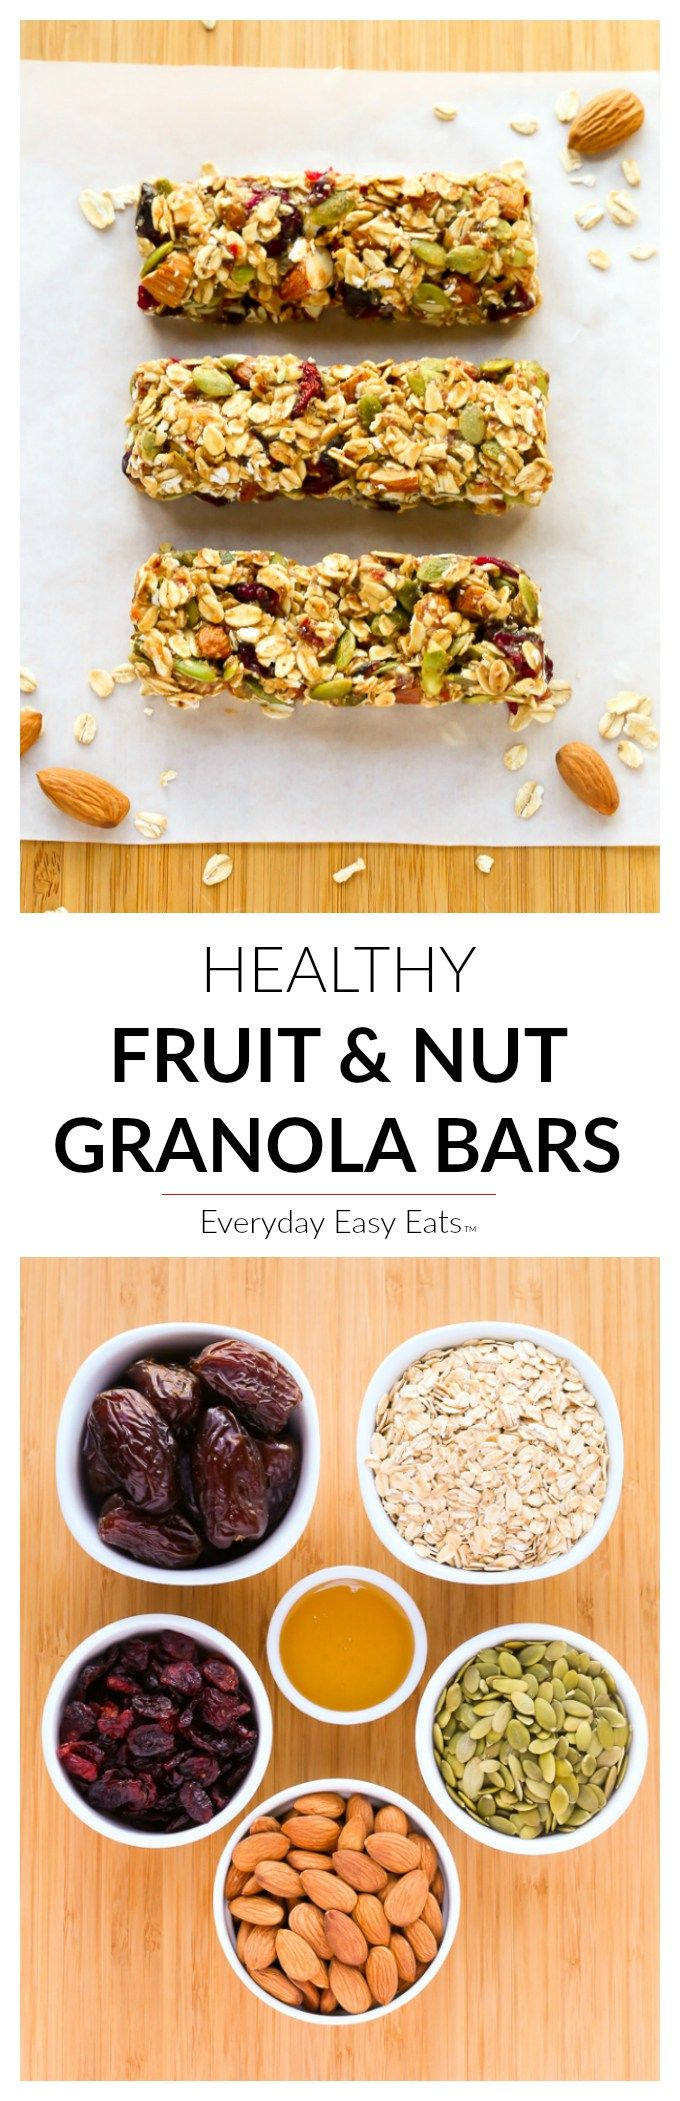 No Bake 6 Ingredient Healthy Fruit And Nut Granola Bars Recipe At Everydayeasyeats Com Healthy Granola Bars Healthy Fruits Granola Healthy